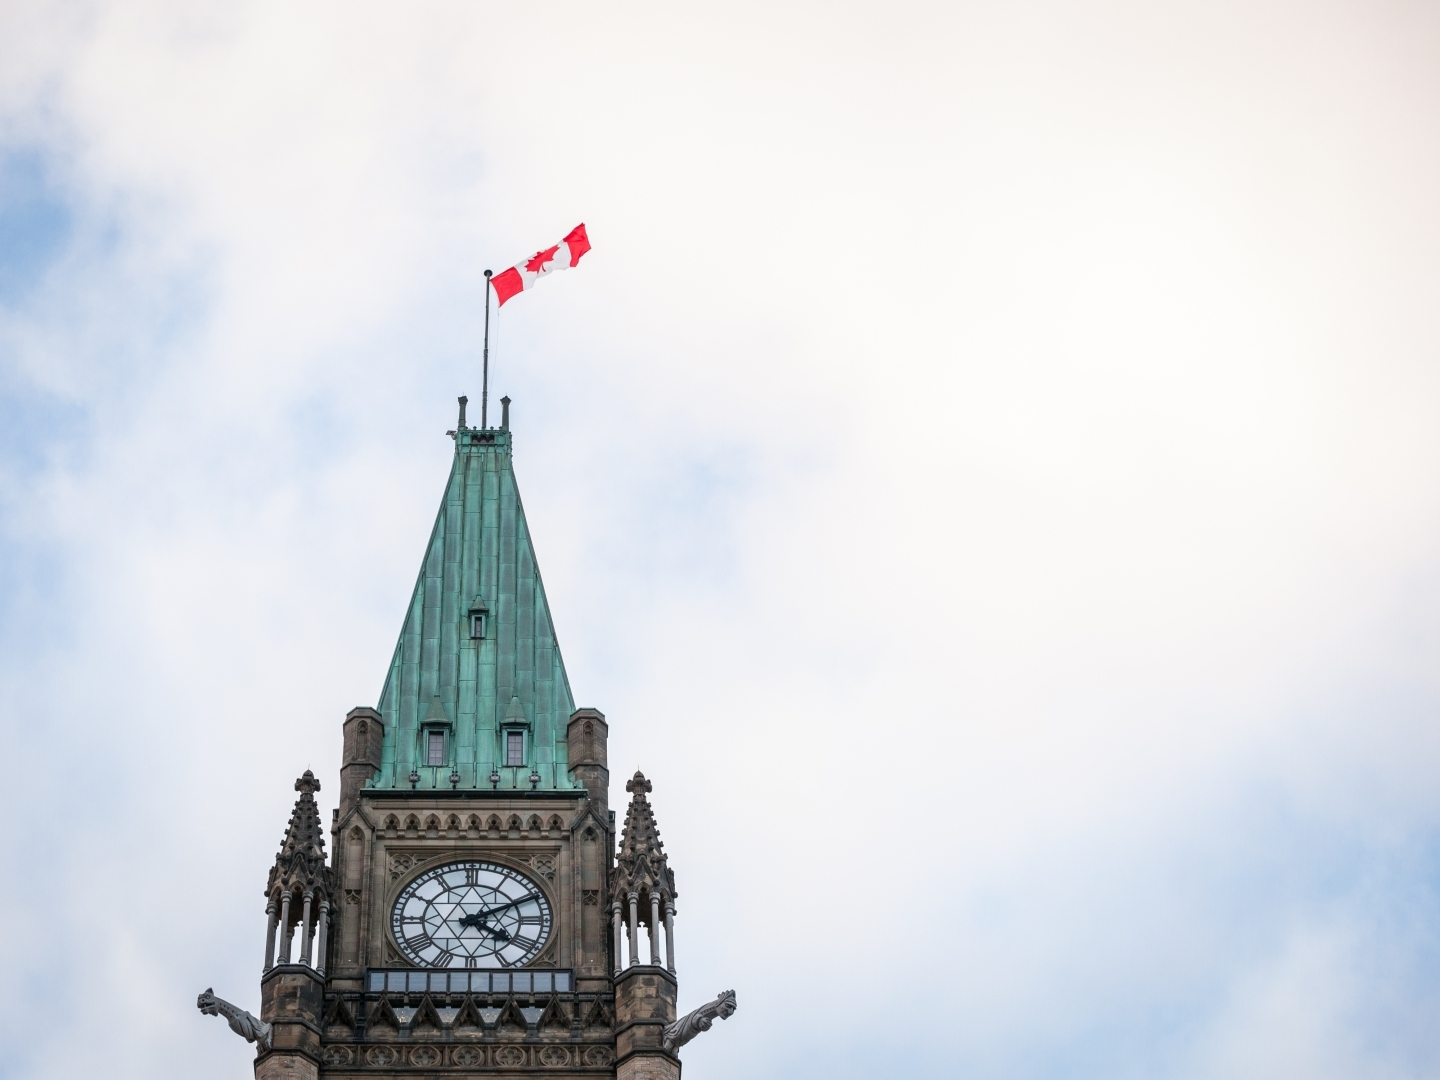 The clock tower at the centre block of Canadian Parliament. (Shutterstock)